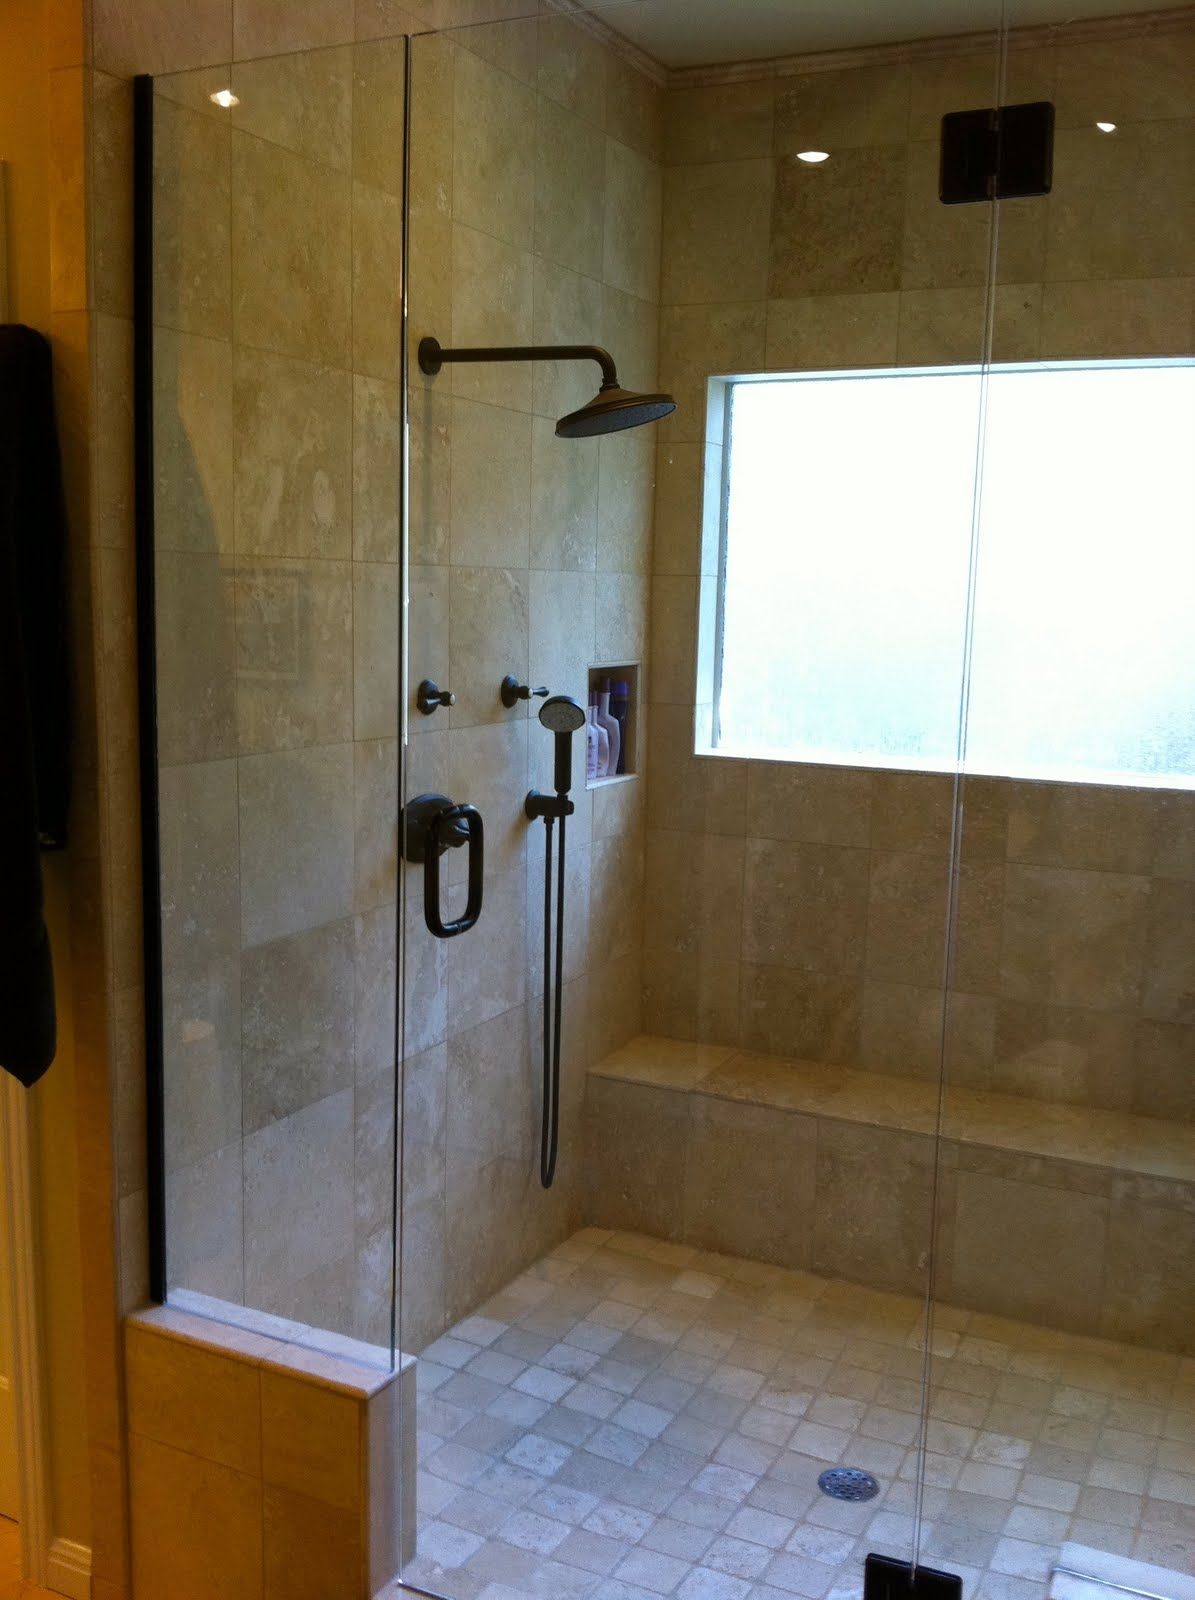 17 best images about bathroom and shower design on pinterest - Shower Designs Ideas